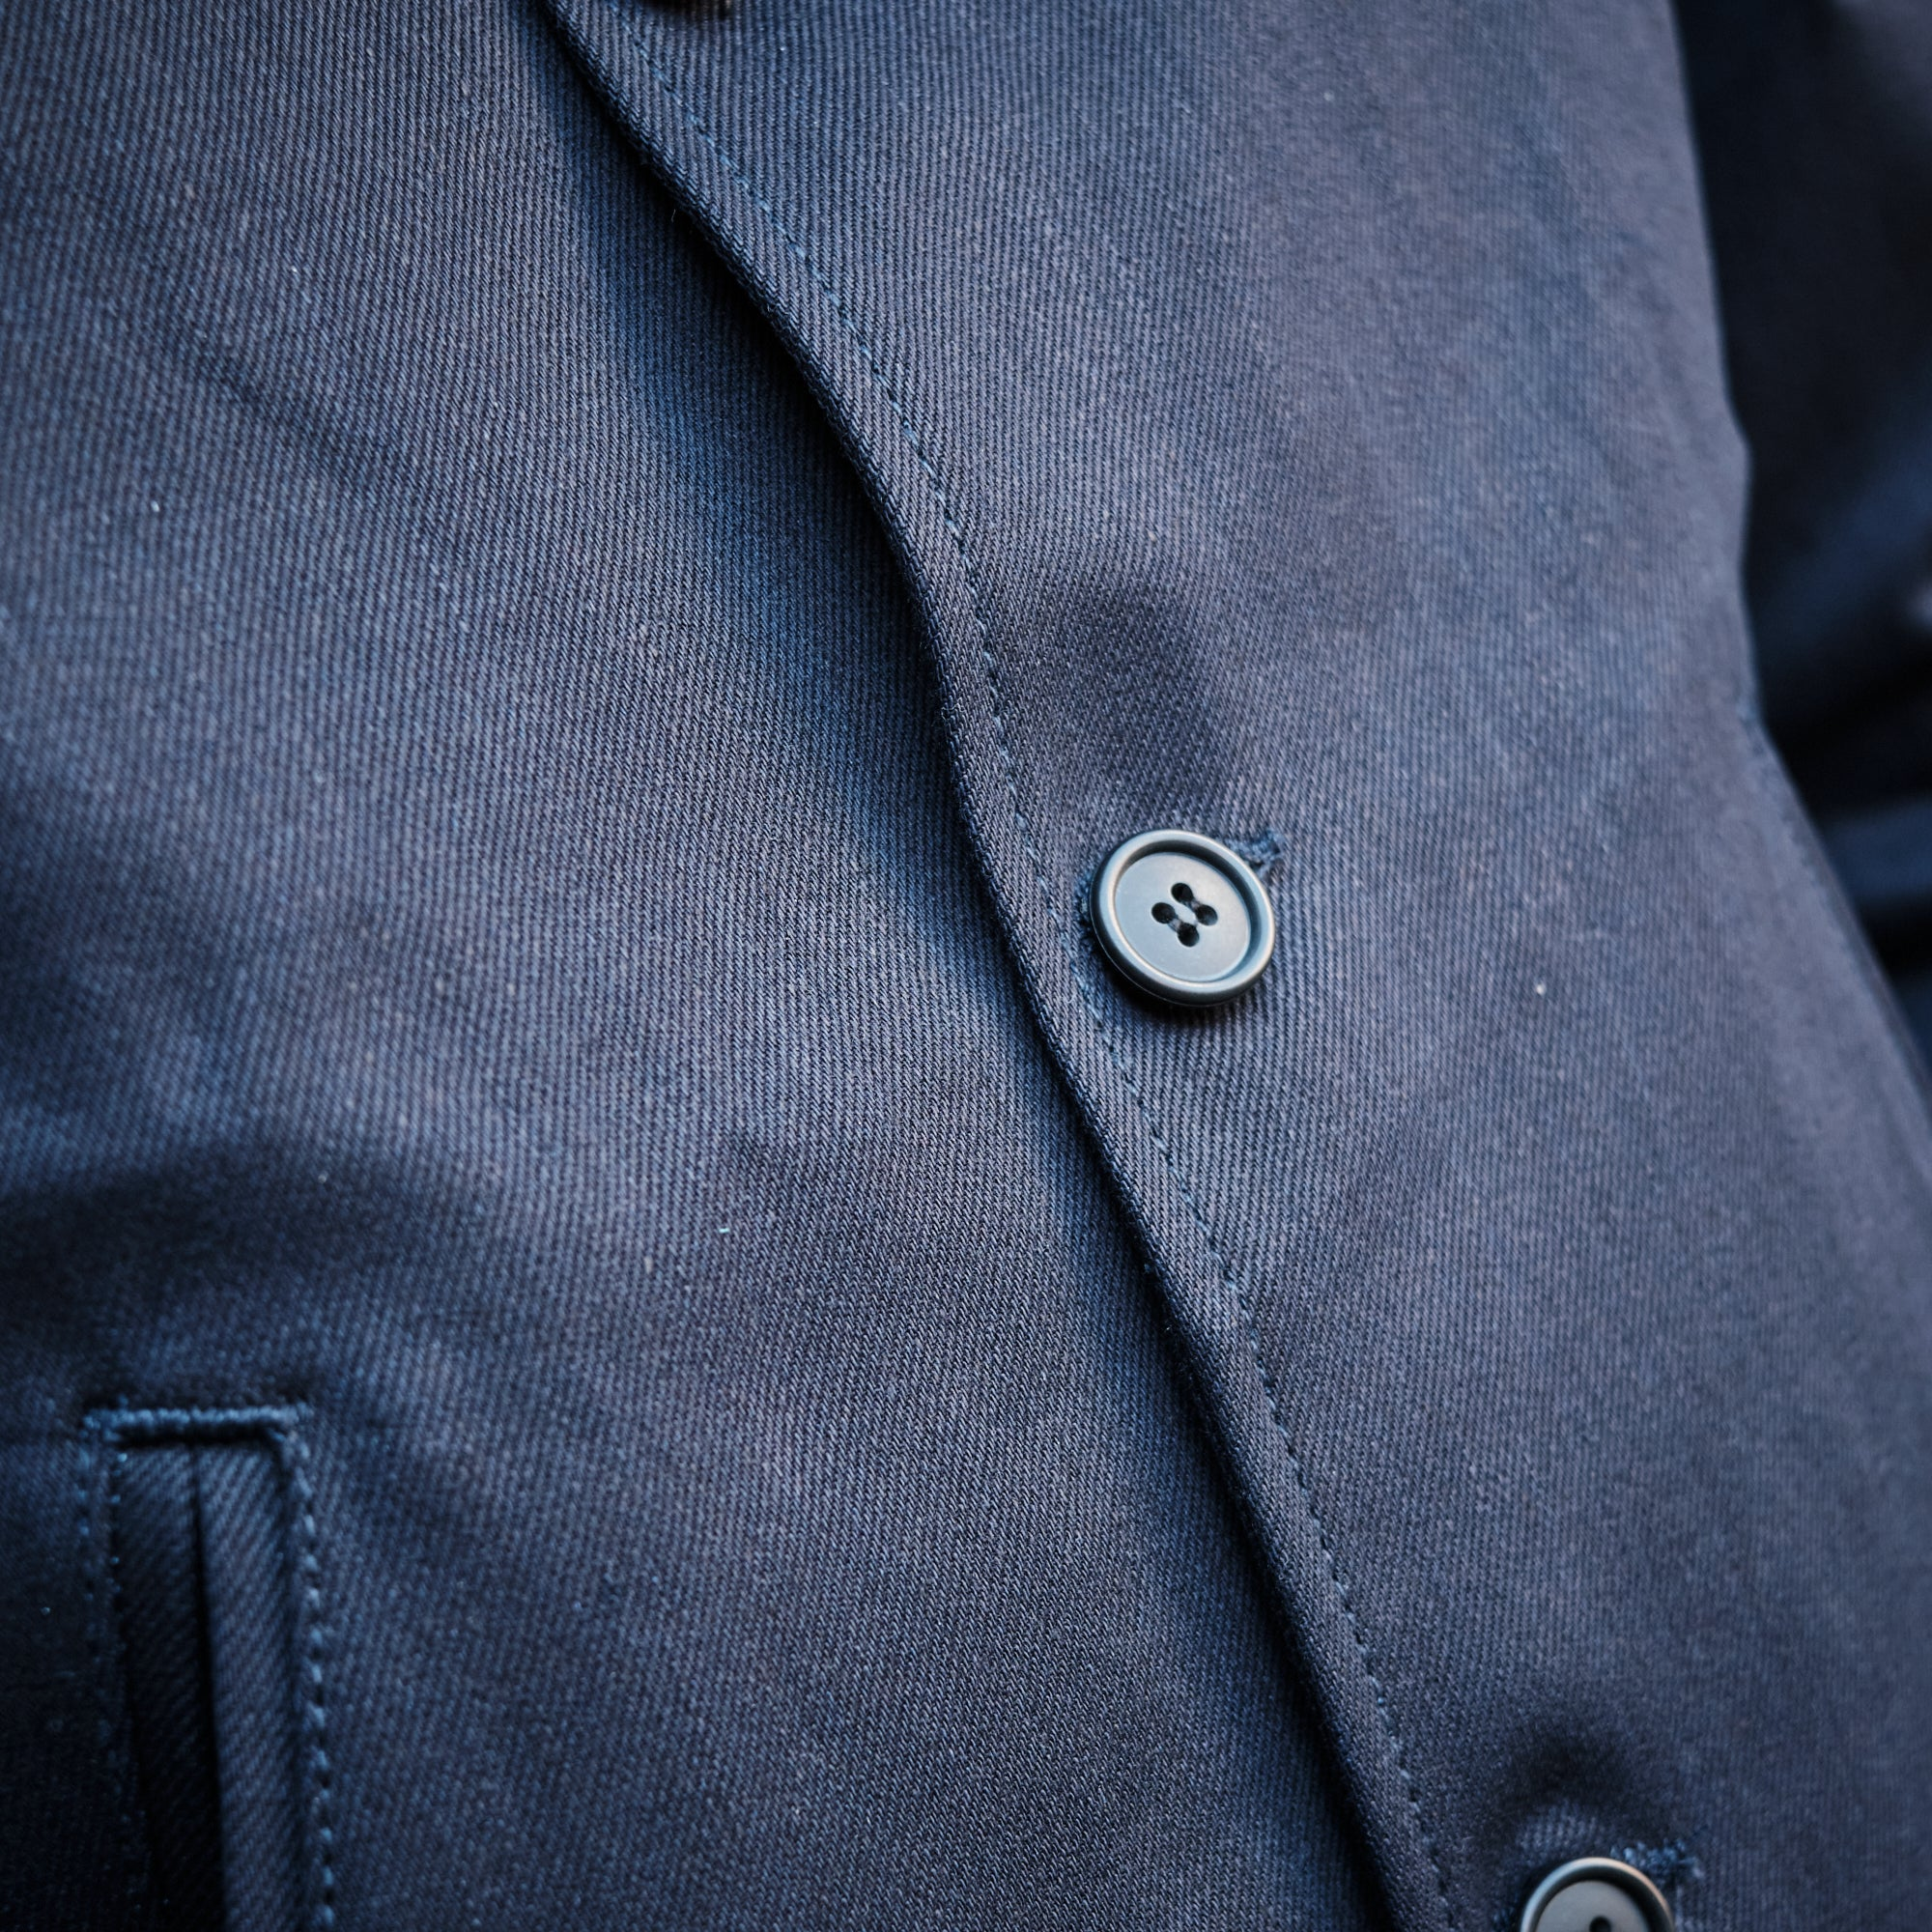 Load image into Gallery viewer, Rogue Territory - Peacoat in dark indigo